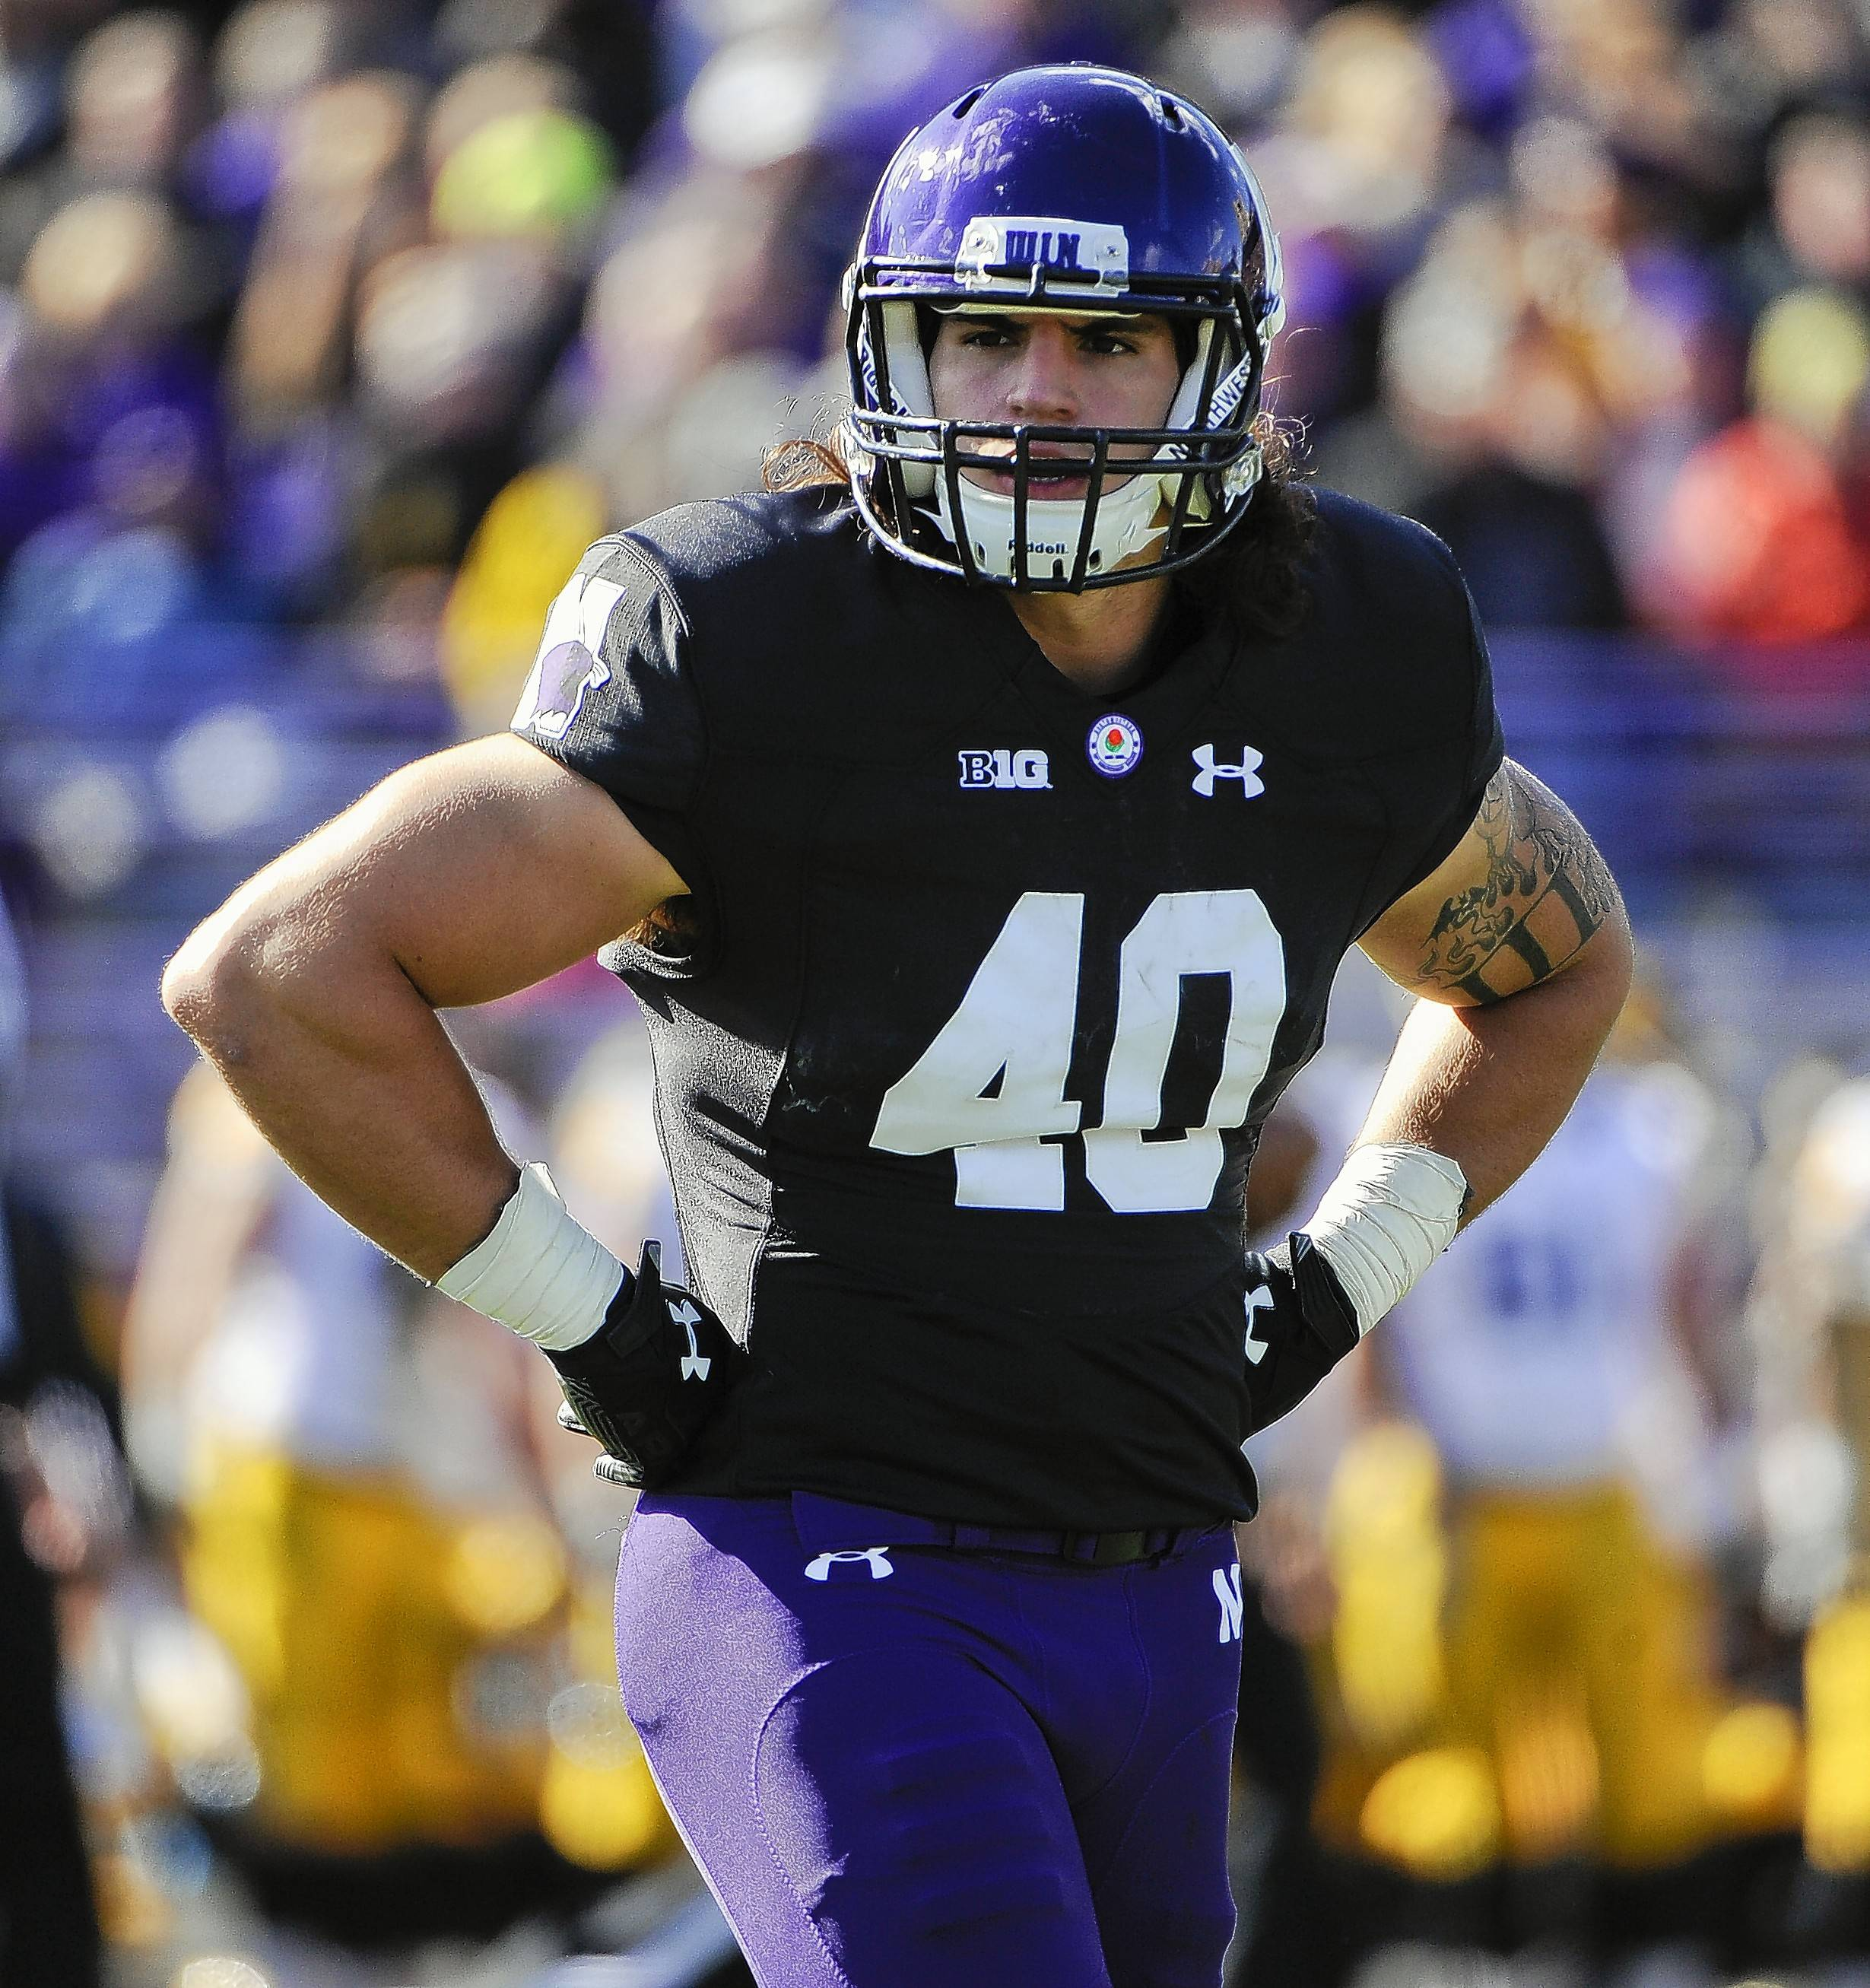 Northwestern fullback Dan Vitale looks on during a game against Iowa on Oct. 17, 2015, in Evanston.